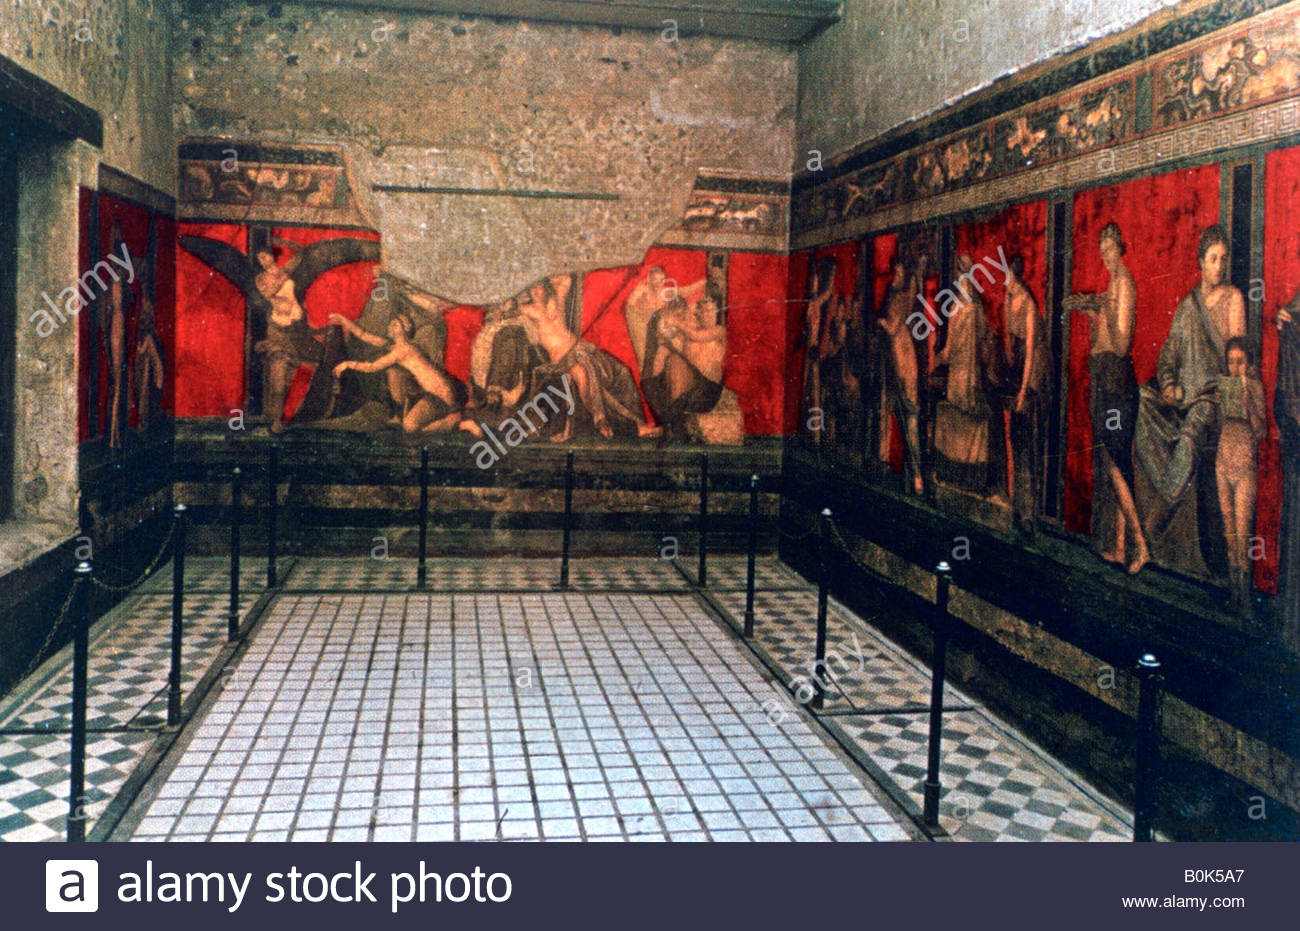 Frieze of the Villa of the Mysteries, Pompeii. - Stock Image